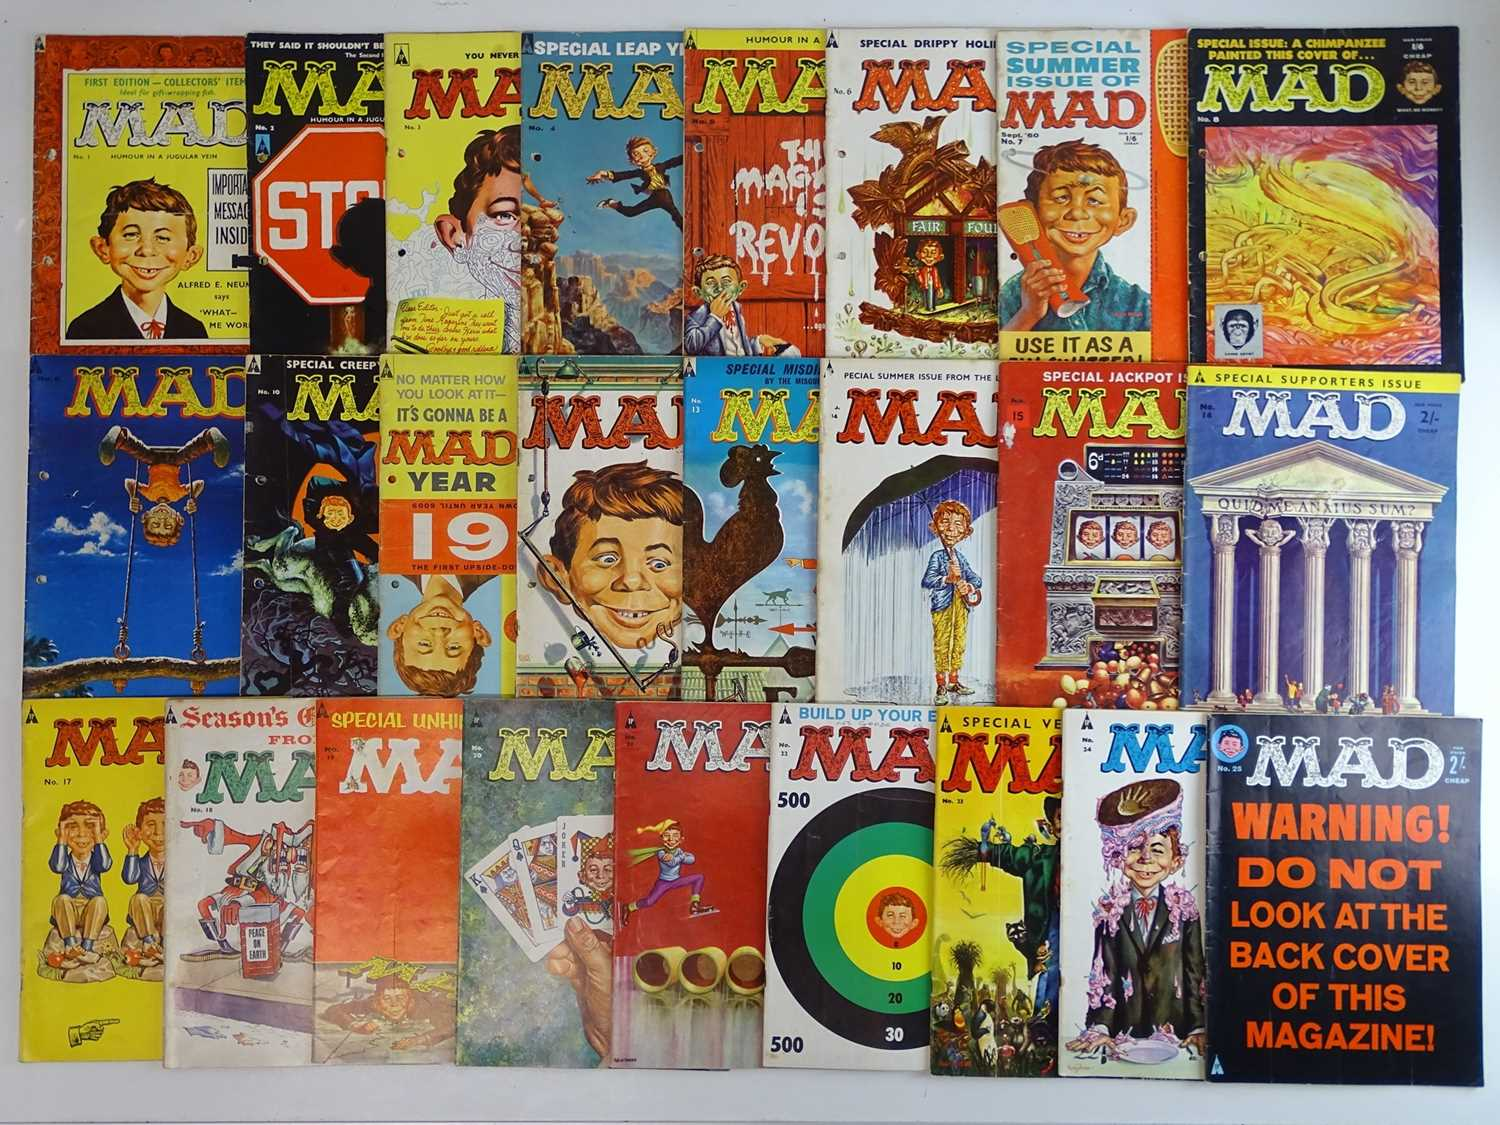 LARGE QUANTITY OF MAD MAGAZINES (25 in Lot) - (1959/62 - STRATO PUBLICATIONS - BRITISH EDITIONS) -